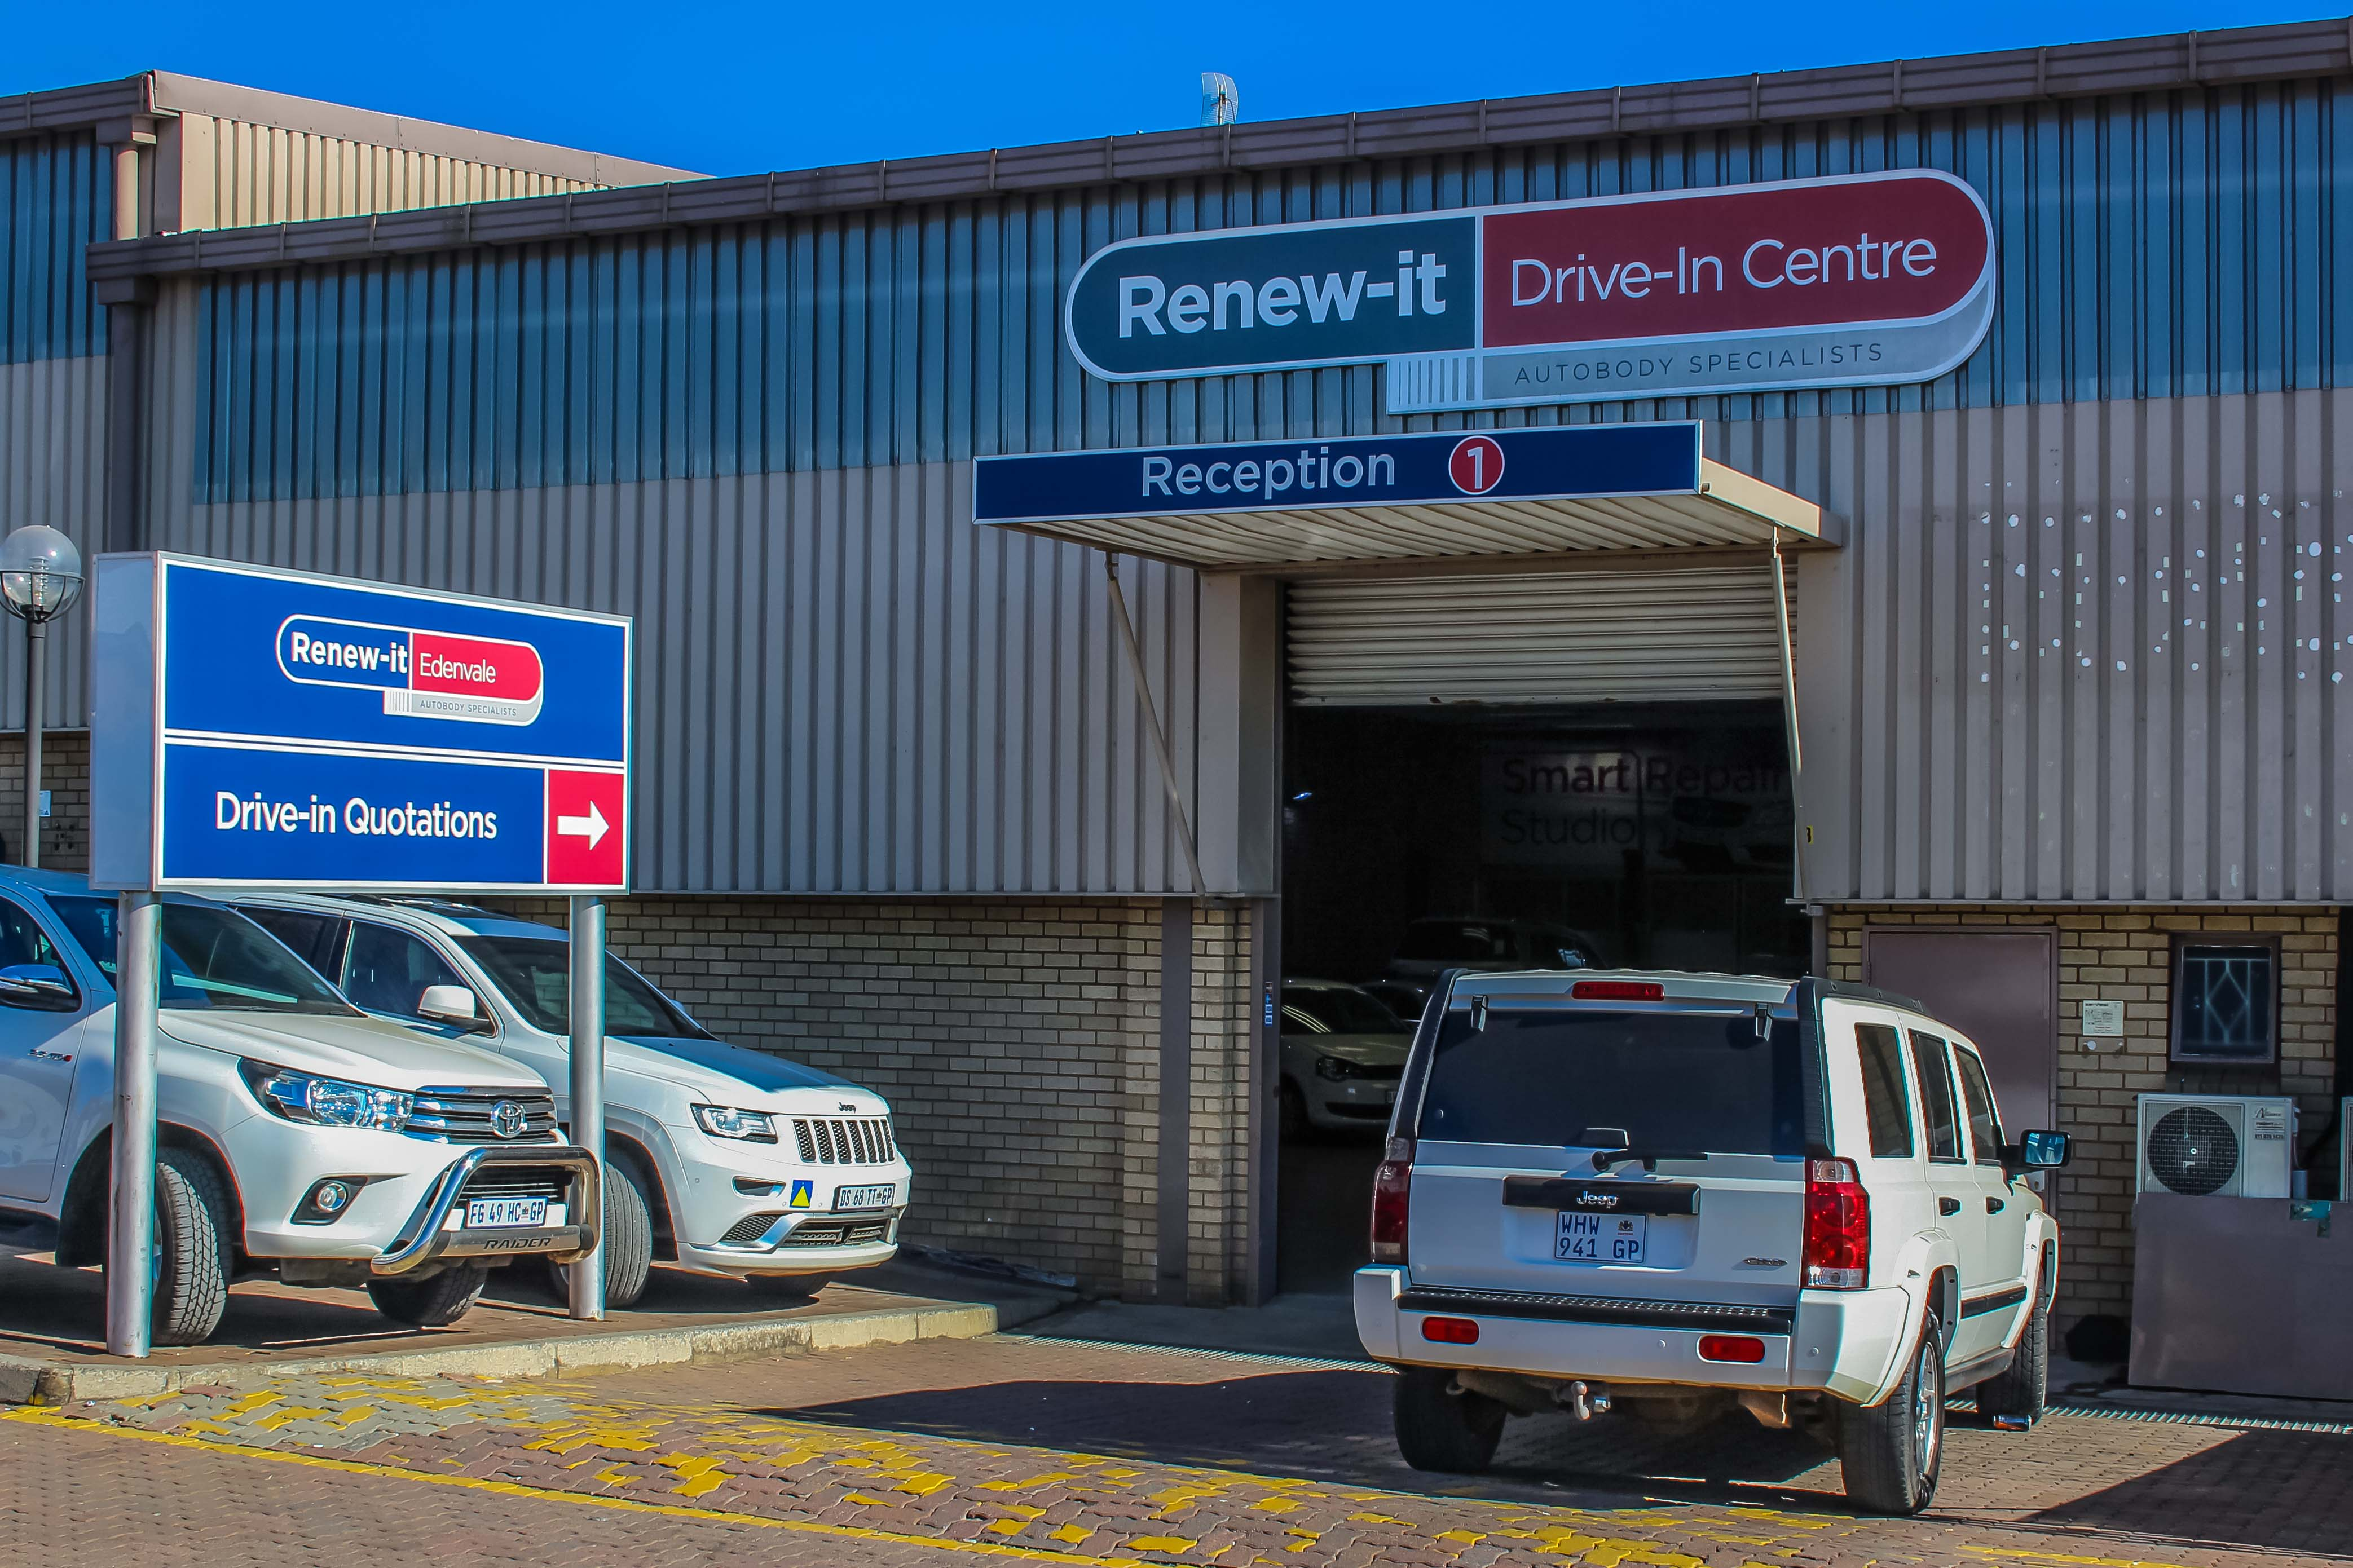 Renew-It Drive-In Centre Edenvale